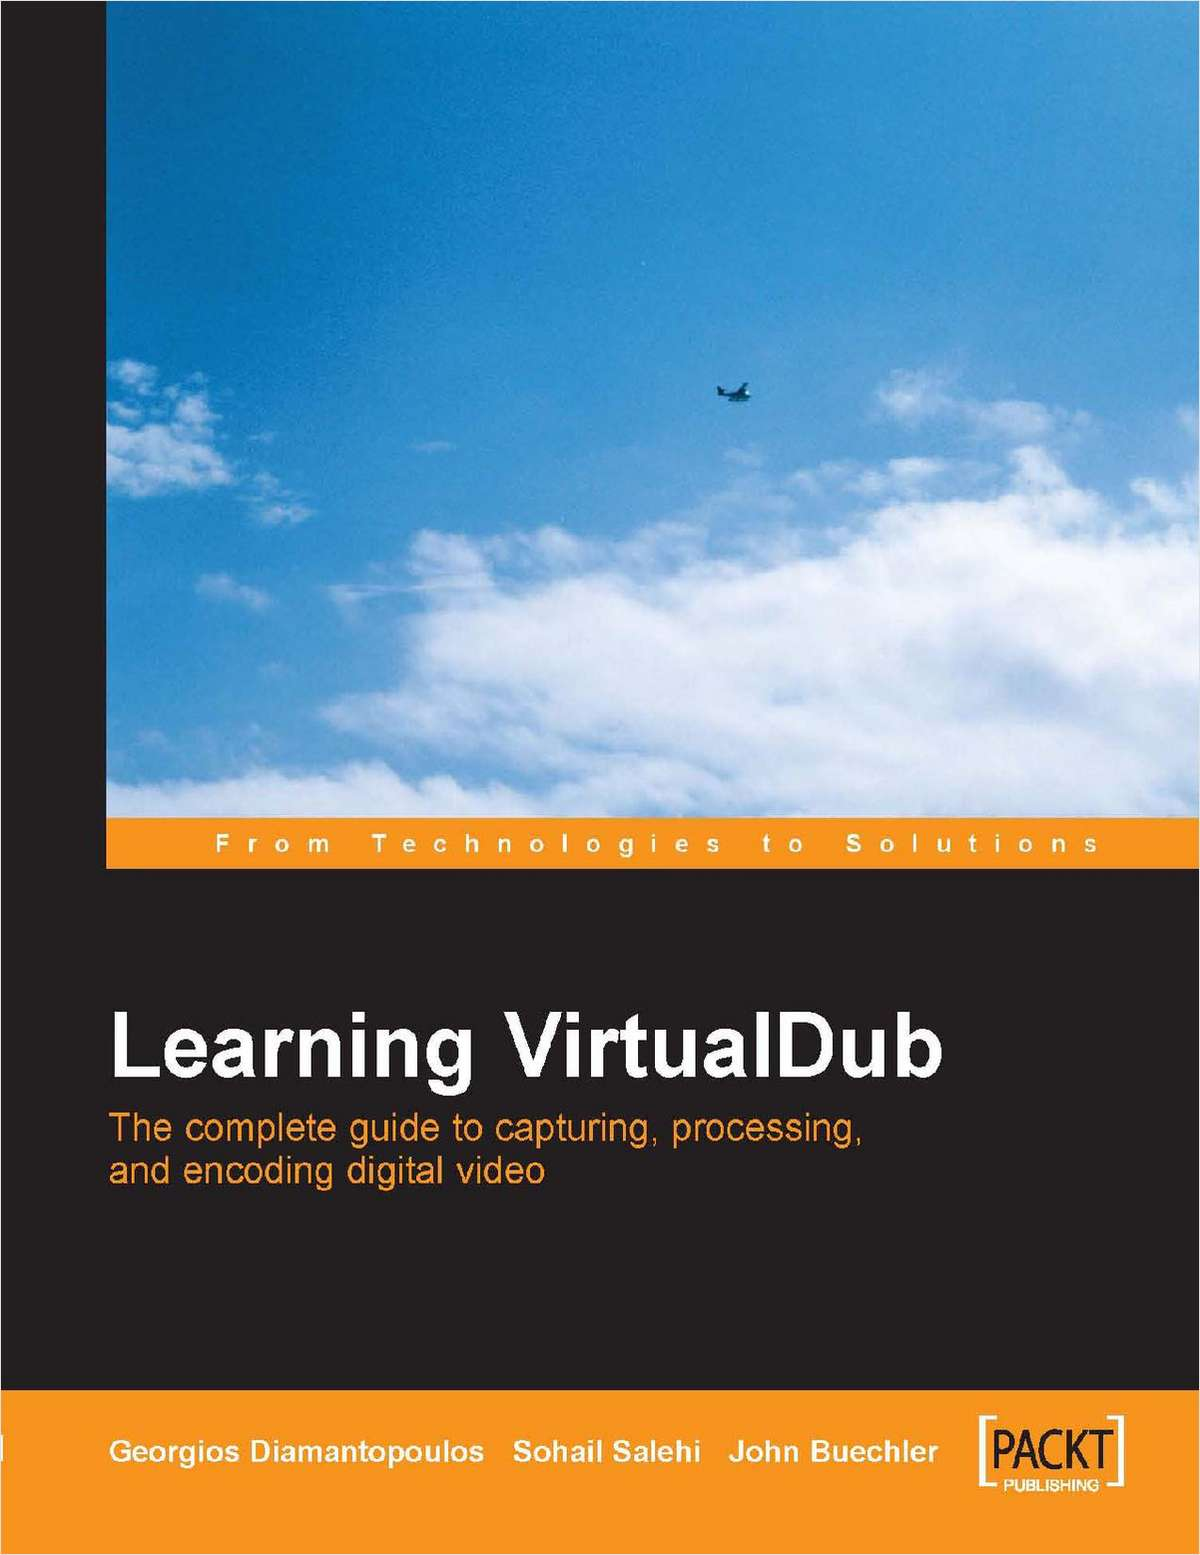 Learning VirtualDub -- Free 216 page eBook